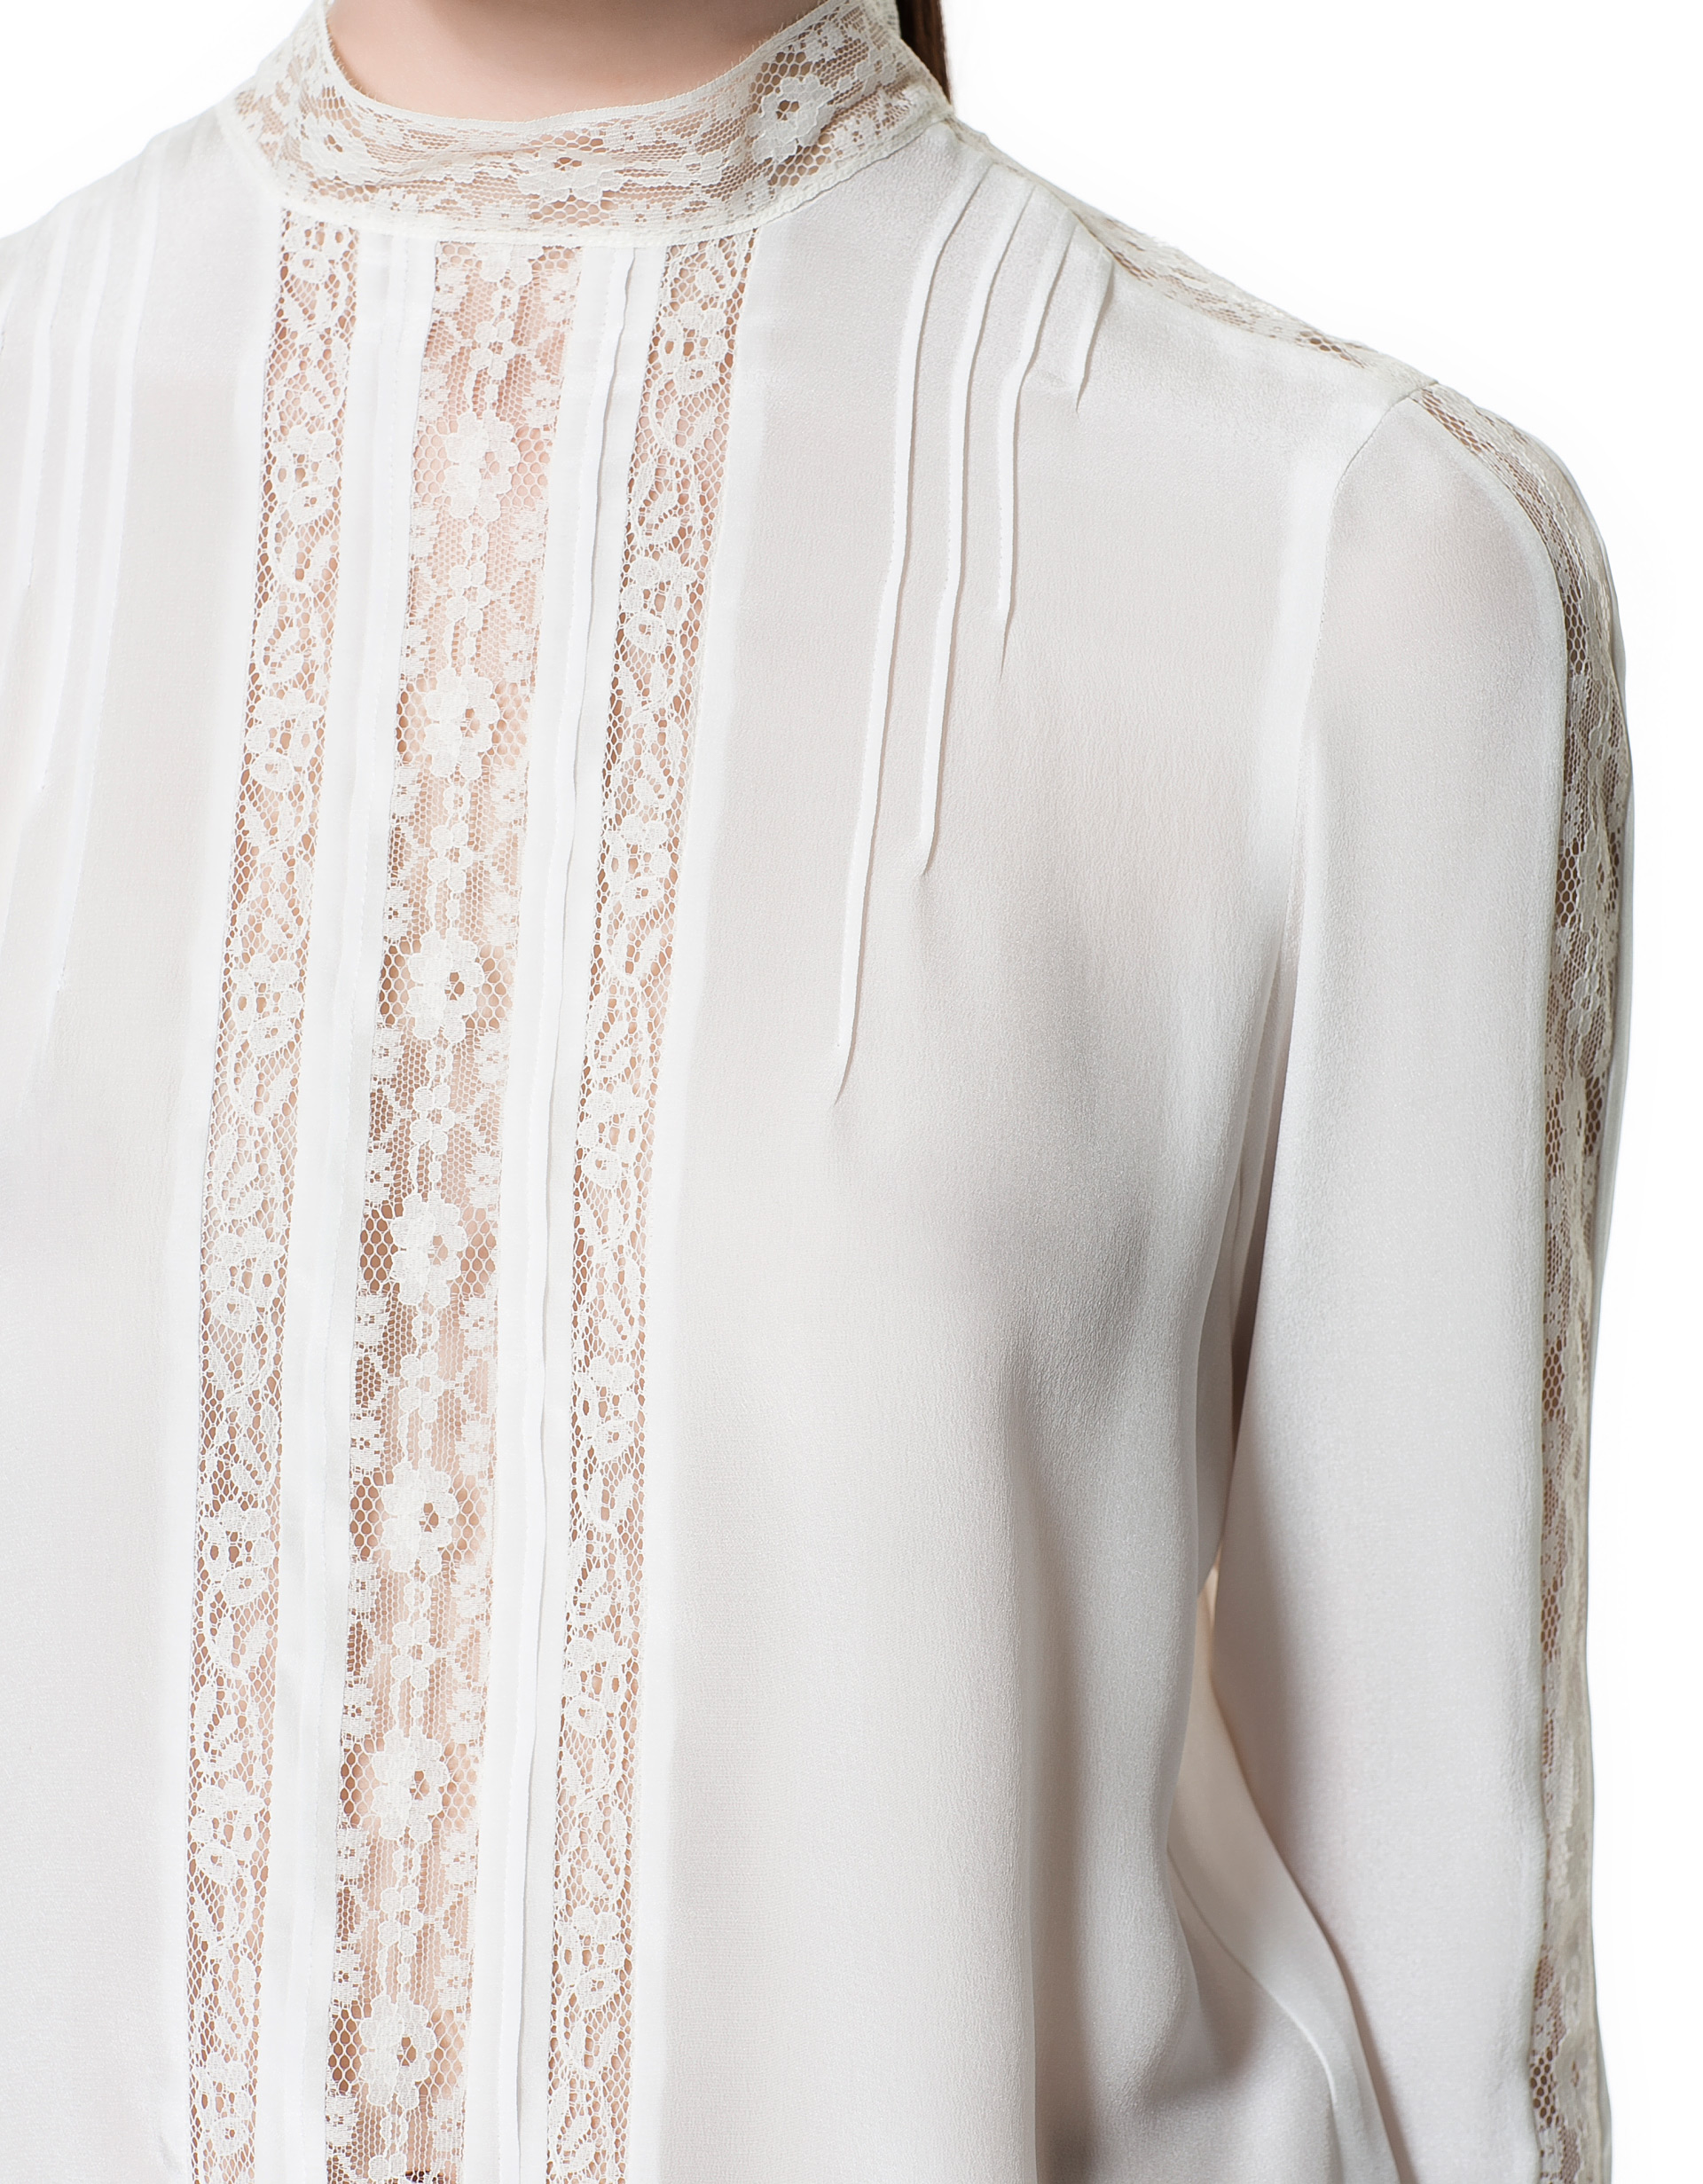 Zara White Silk Blouse 6